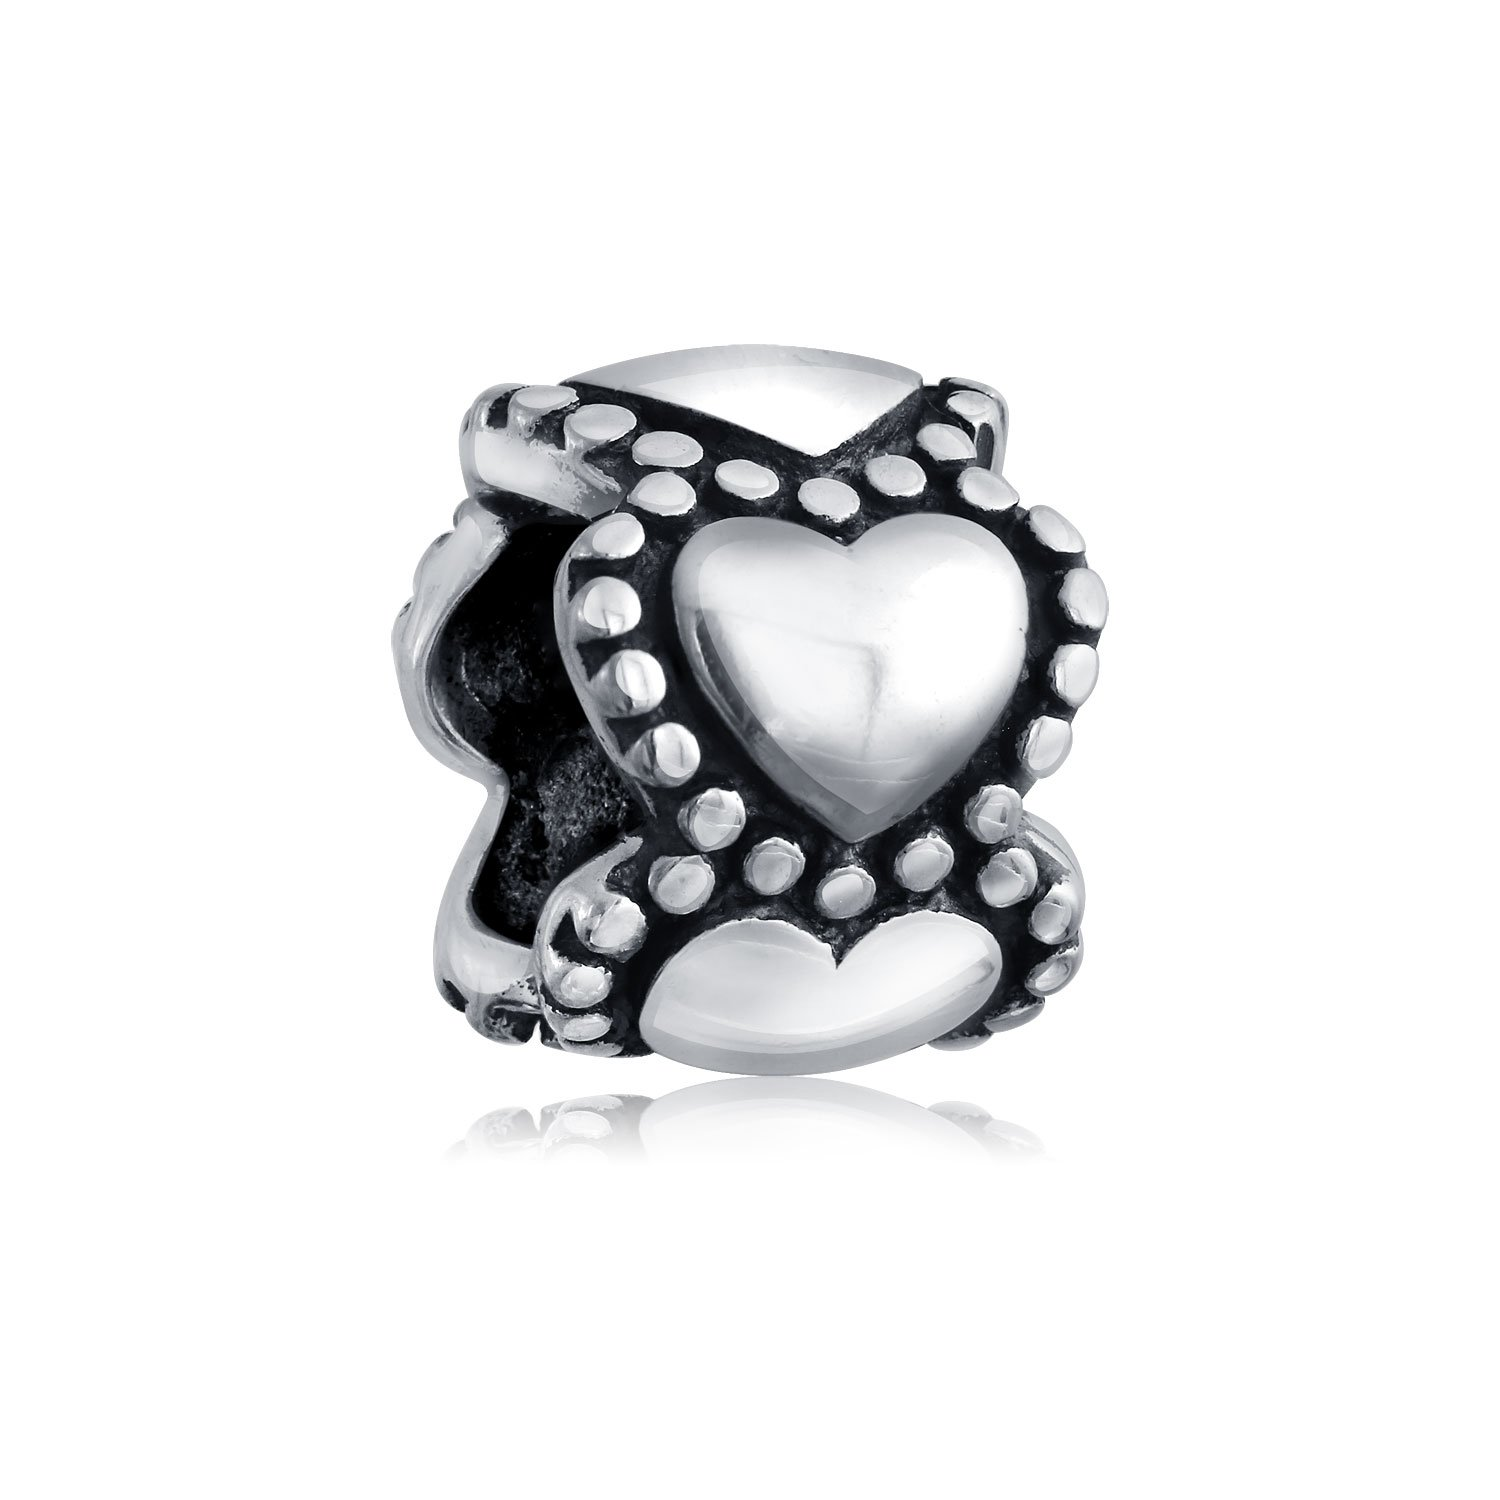 Eternity Heart Spacer Bead Charm For Women For Teen For Girlfriend Oxidized 925 Sterling Silver Fits European Bracelet